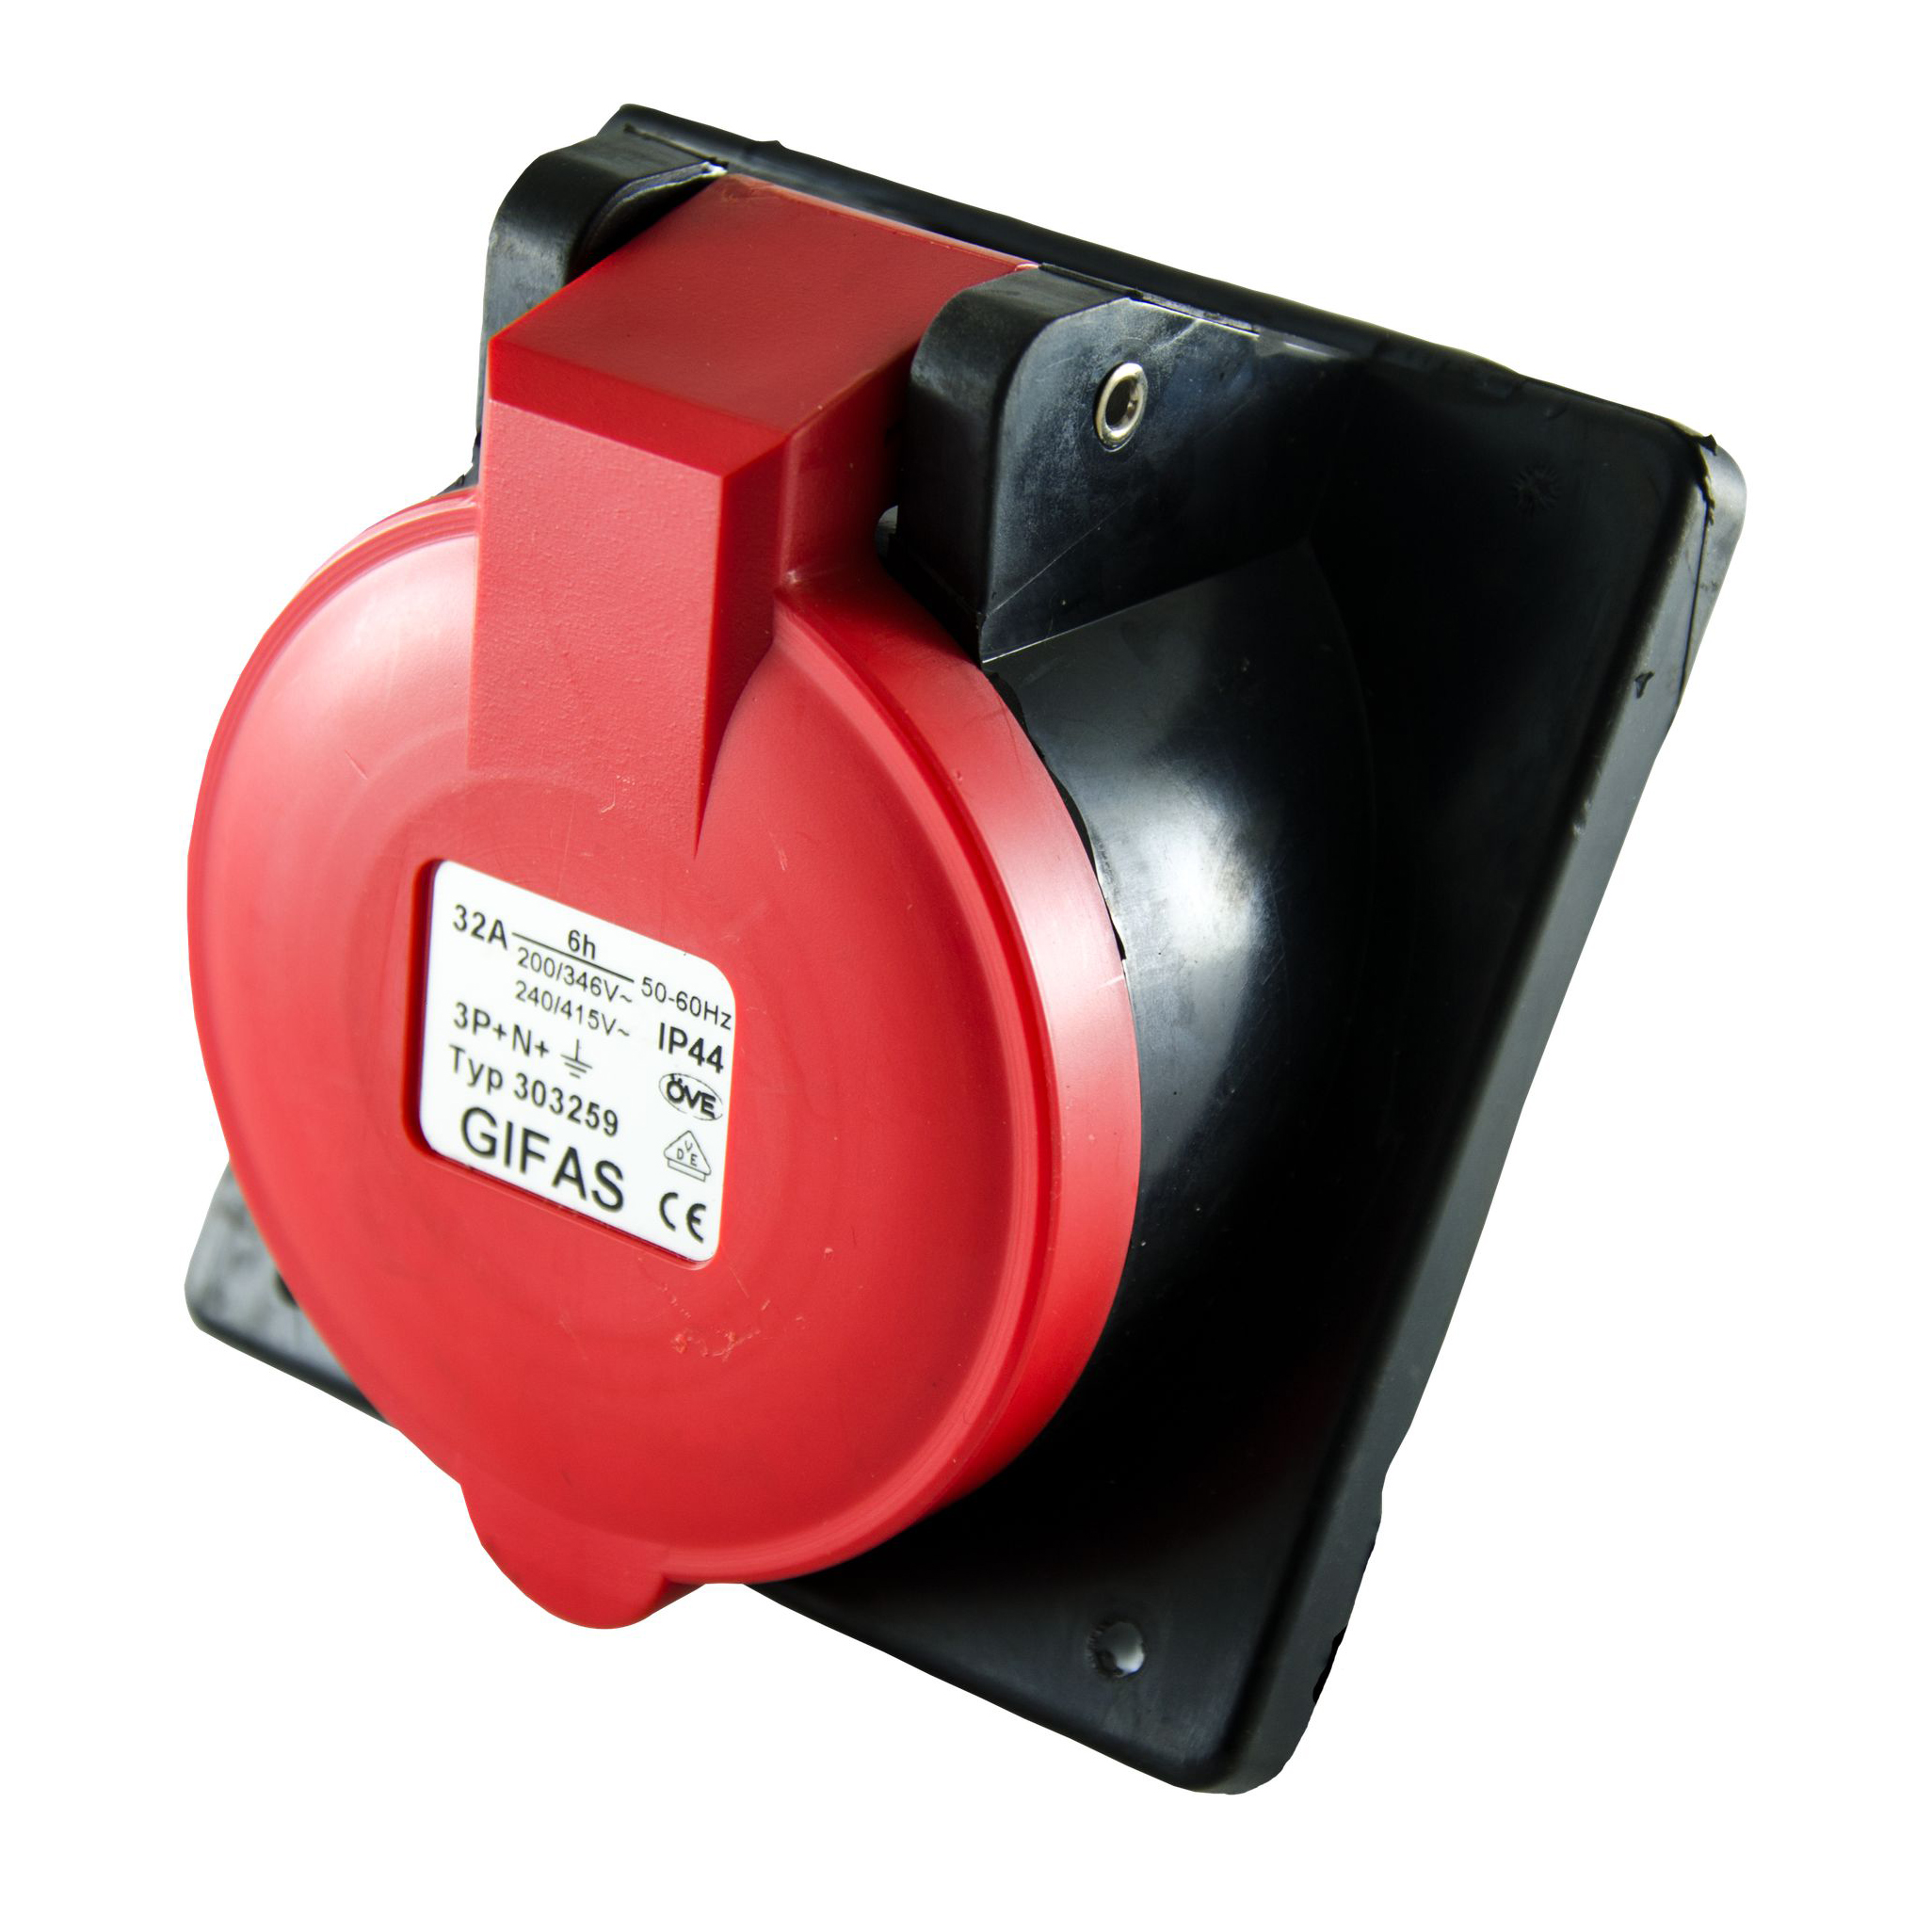 GIFAS Solid Rubber CEE Built-in Socket 32A 400V 5-pole (102095)